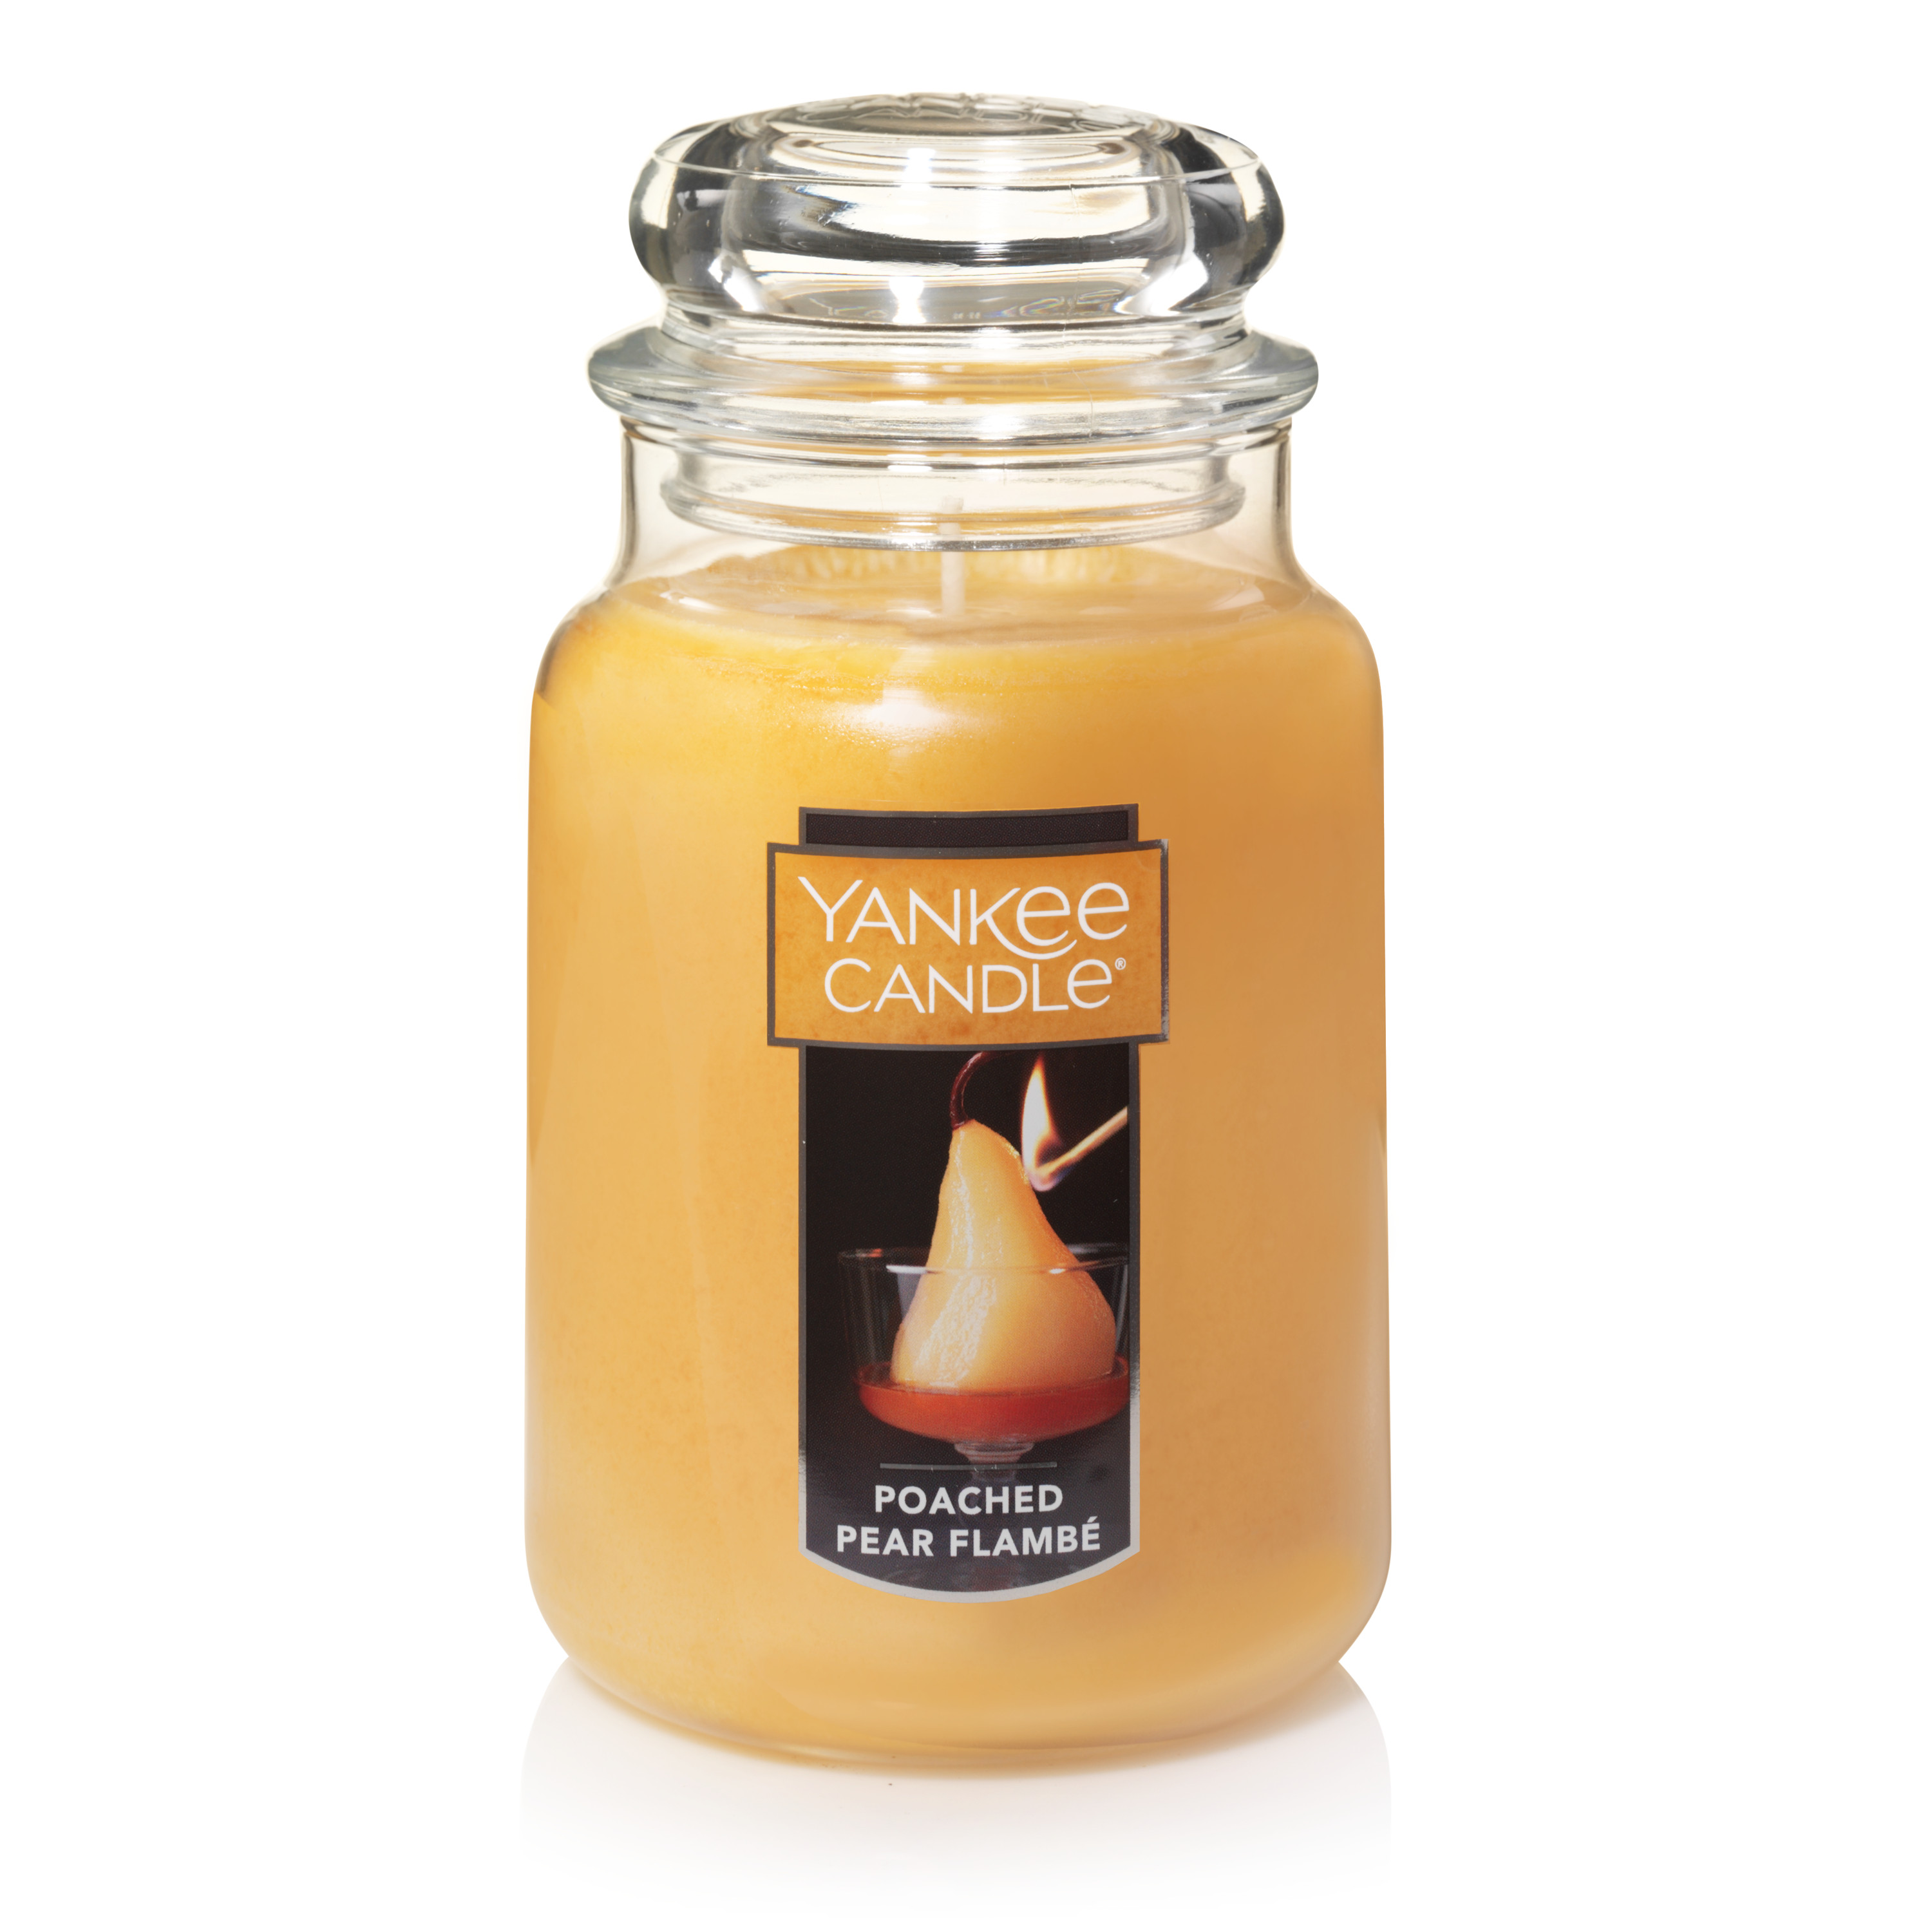 Yankee Candle Large Jar Scented Candle, Poached Pear Flambé